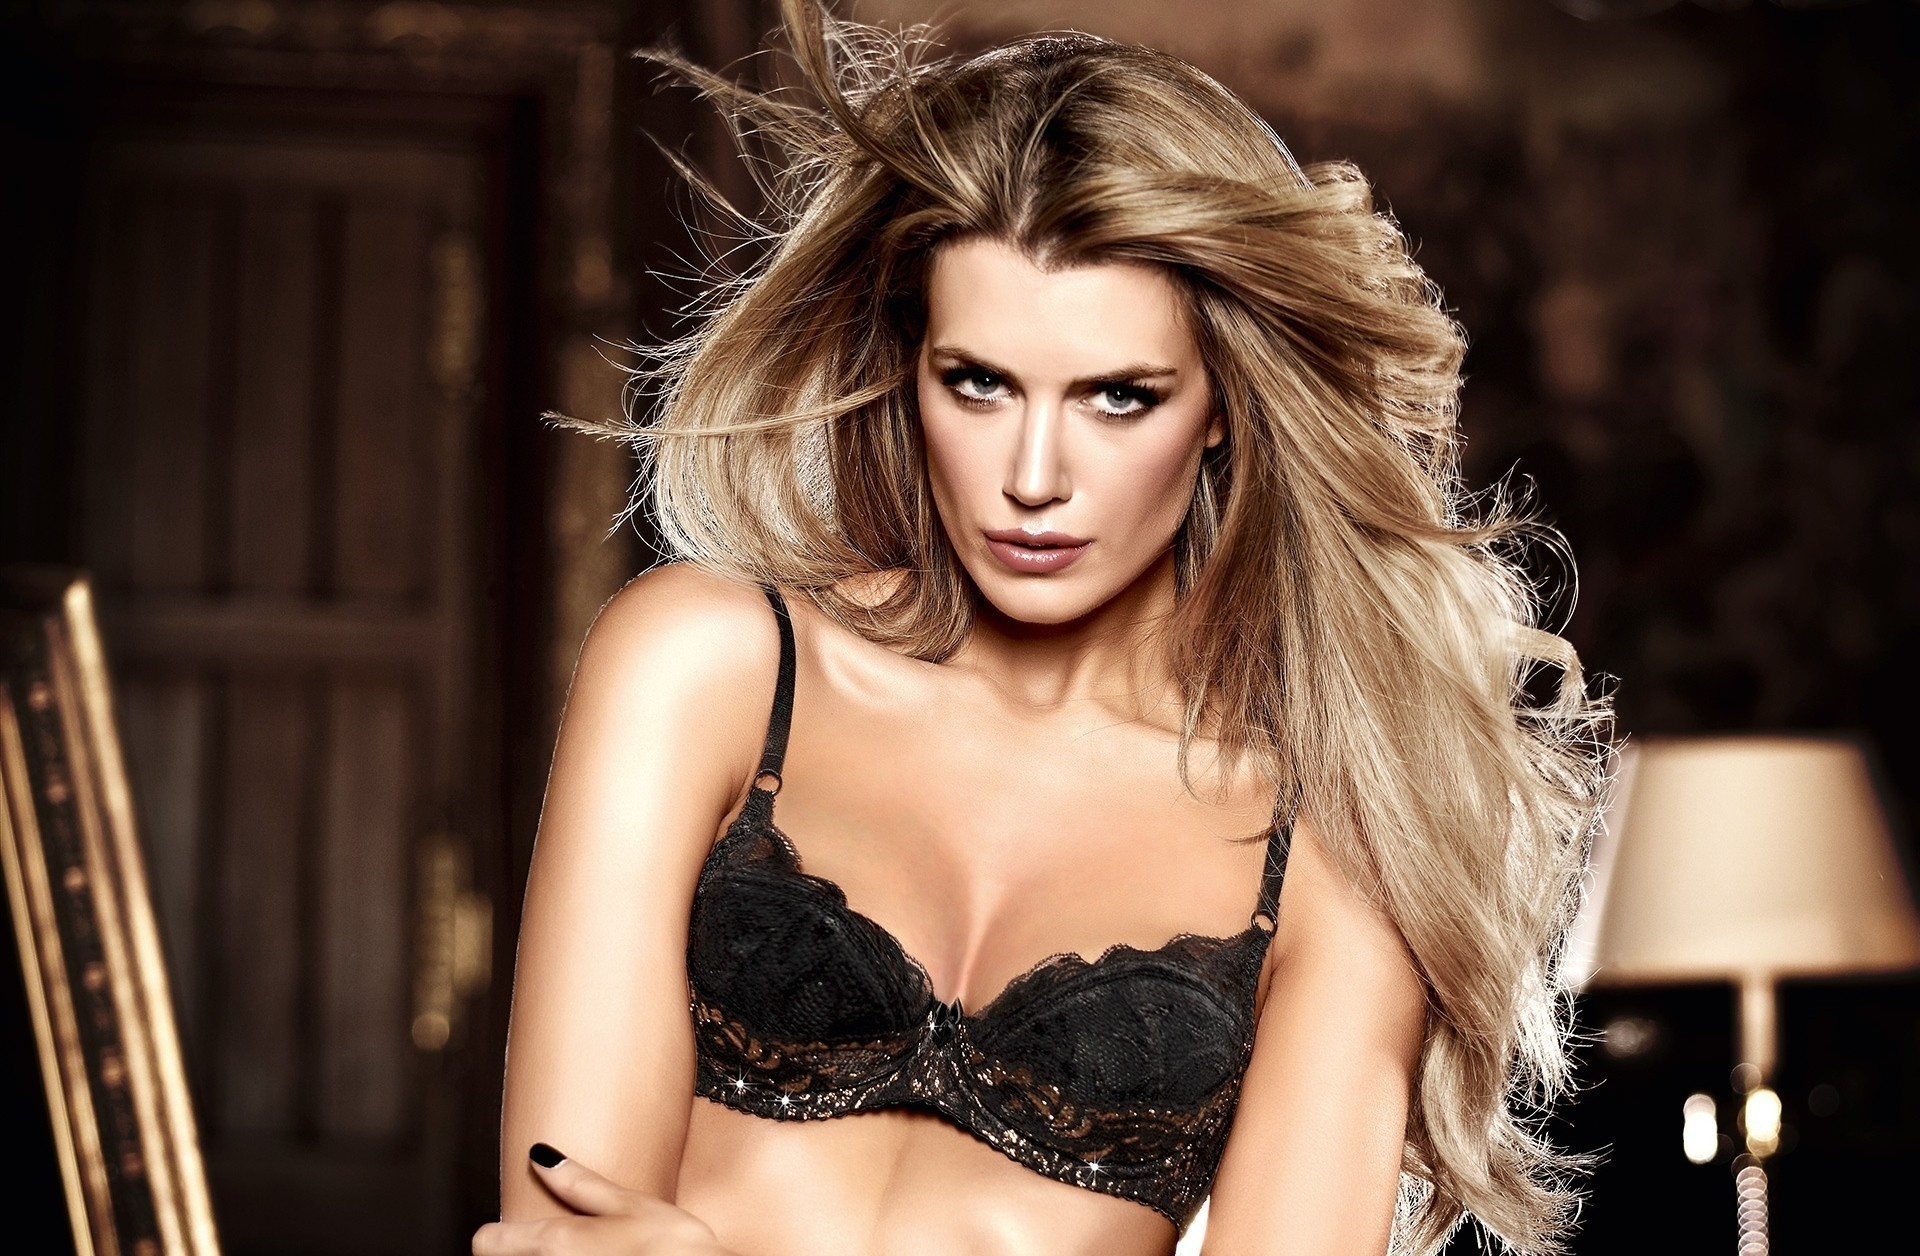 lingerie blondes woman bra HD Wallpaper